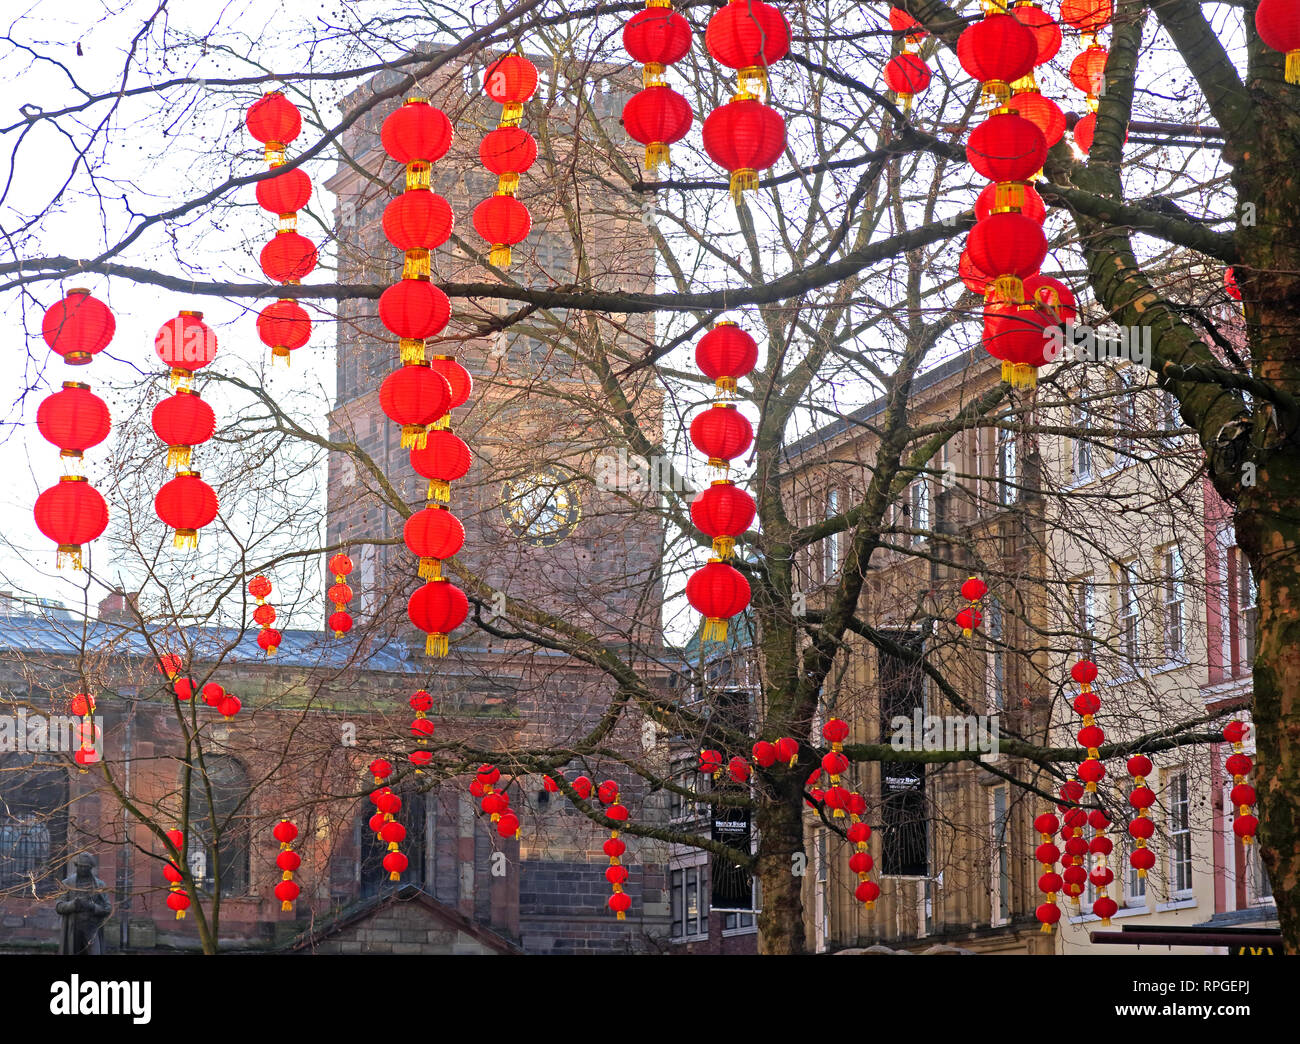 Red Lanterns in St Anns Square Manchester, Chinese New Year, Chinatown, North West England, UK - Stock Image